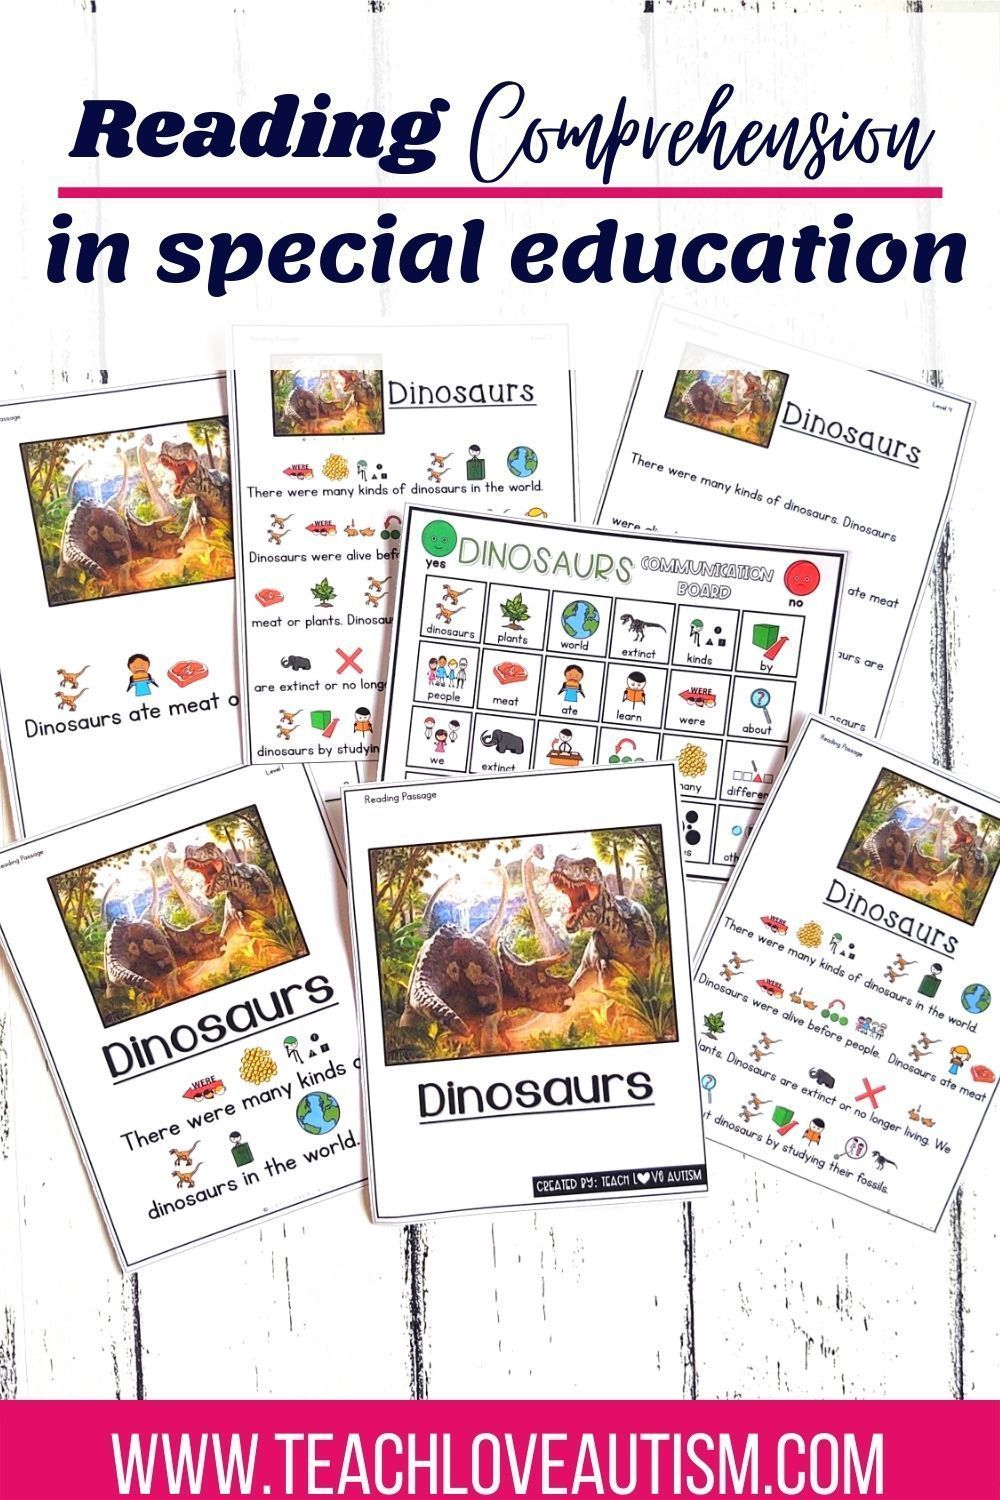 Reading Comprehension In Special Education Teach Love Autism Special Education Comprehension Special Education Reading Comprehension Special Education Reading Activities [ 1500 x 1000 Pixel ]